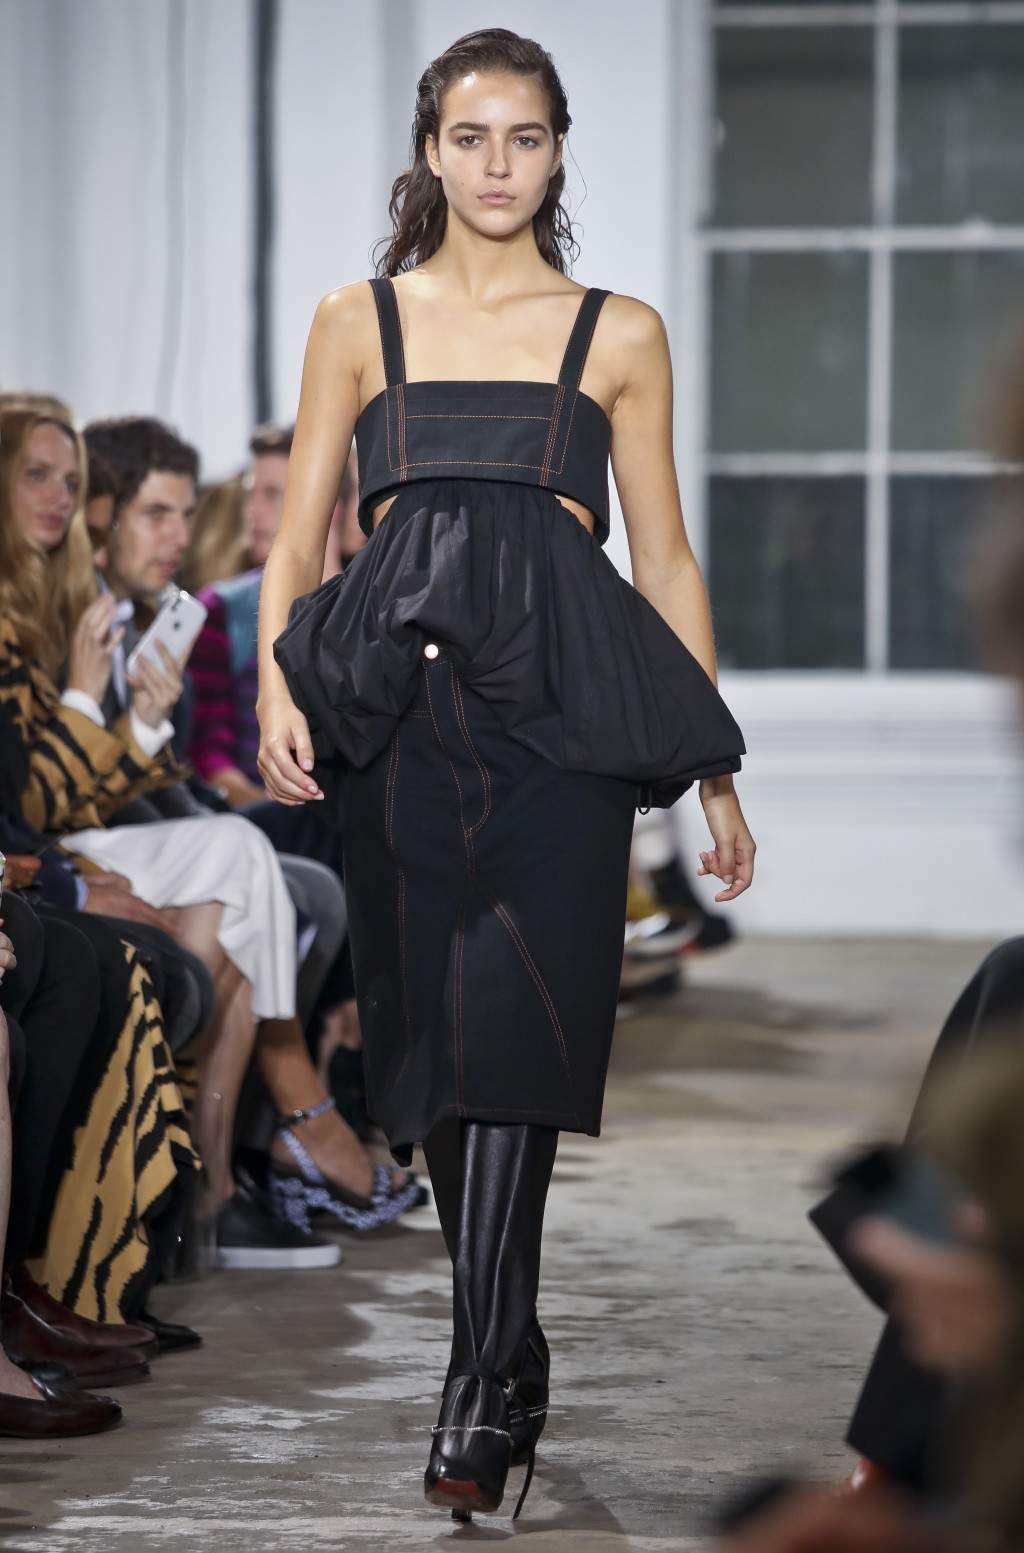 Fashion from Proenza Schouler collection is modeled during Fashion Week, Monday, Sept. 10, 2018 in New York. (AP Photo/Bebeto Matthews)